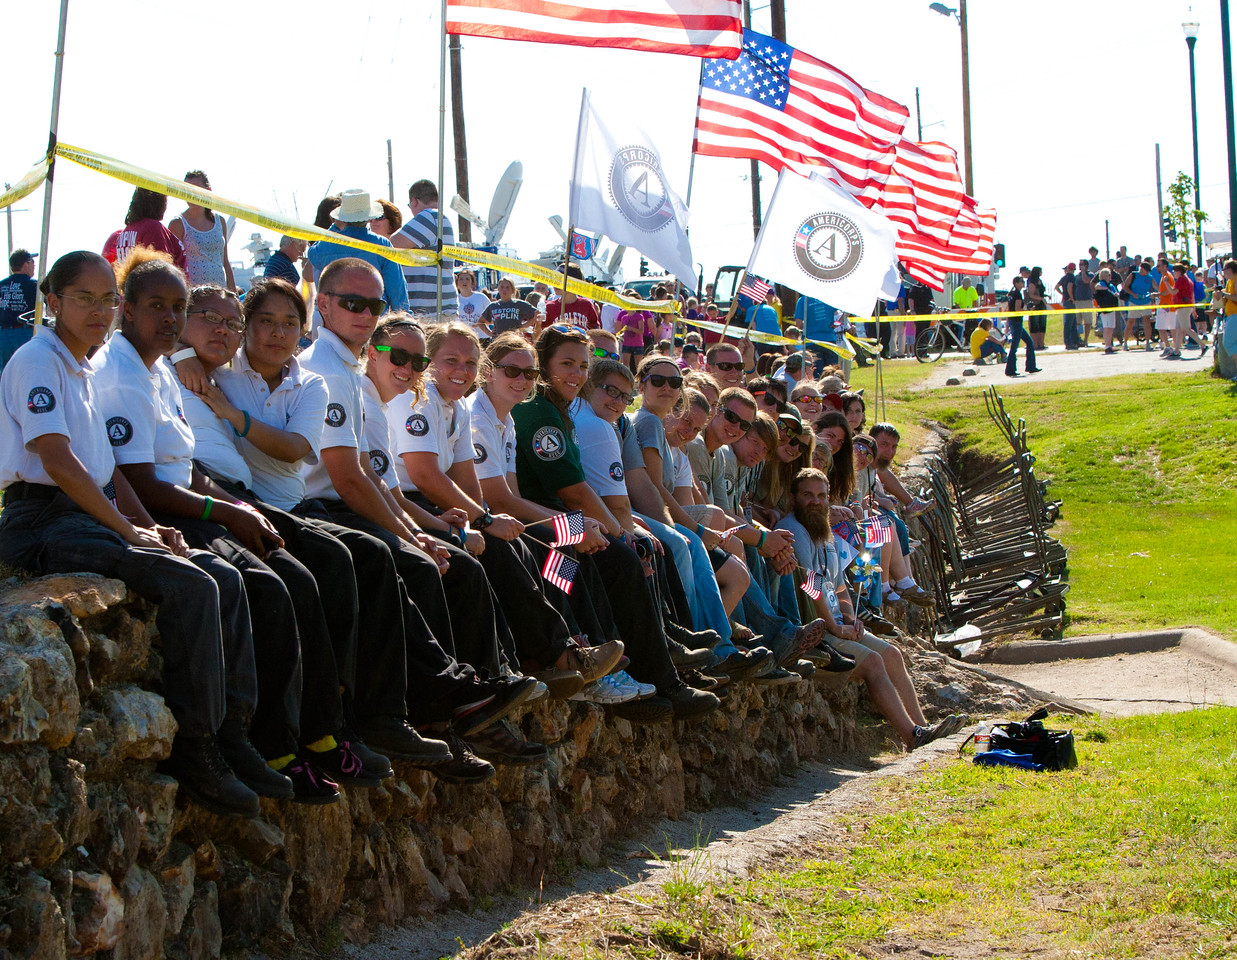 AmeriCorps members watching festivities after the Walk of Unity in Cunningham Park in Joplin, MO. Corporation for National and Community Service Photo